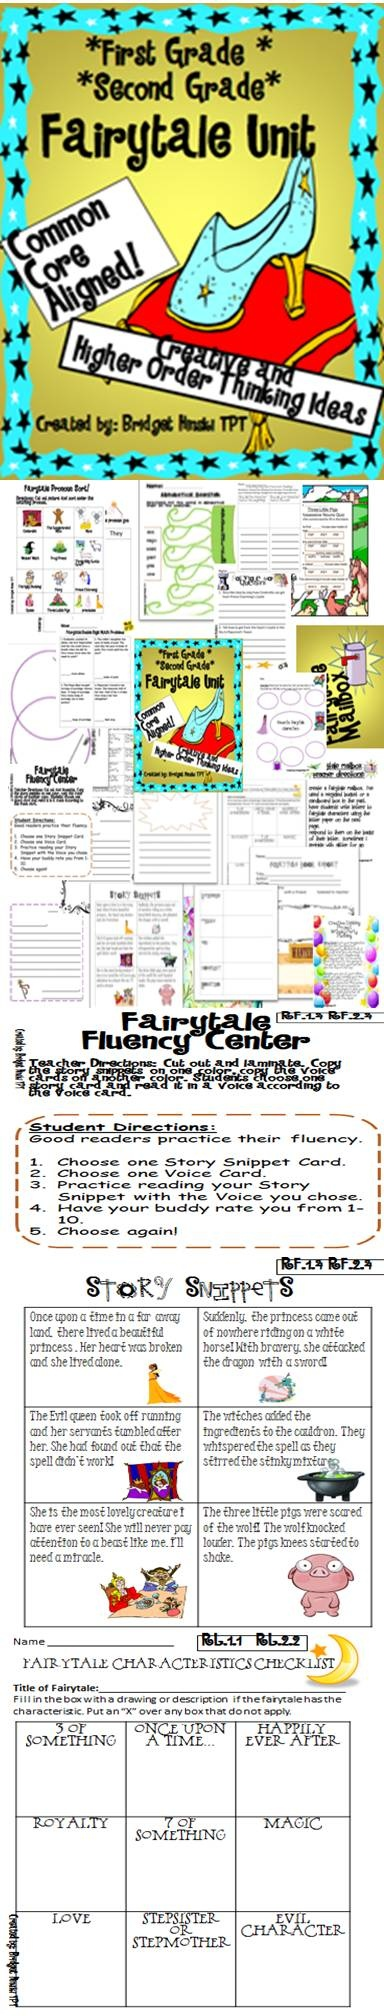 Fairytale Unit  aligned to common core for 2nd grade and 1st Graders! RL.1.1 RL.2.1 and more!